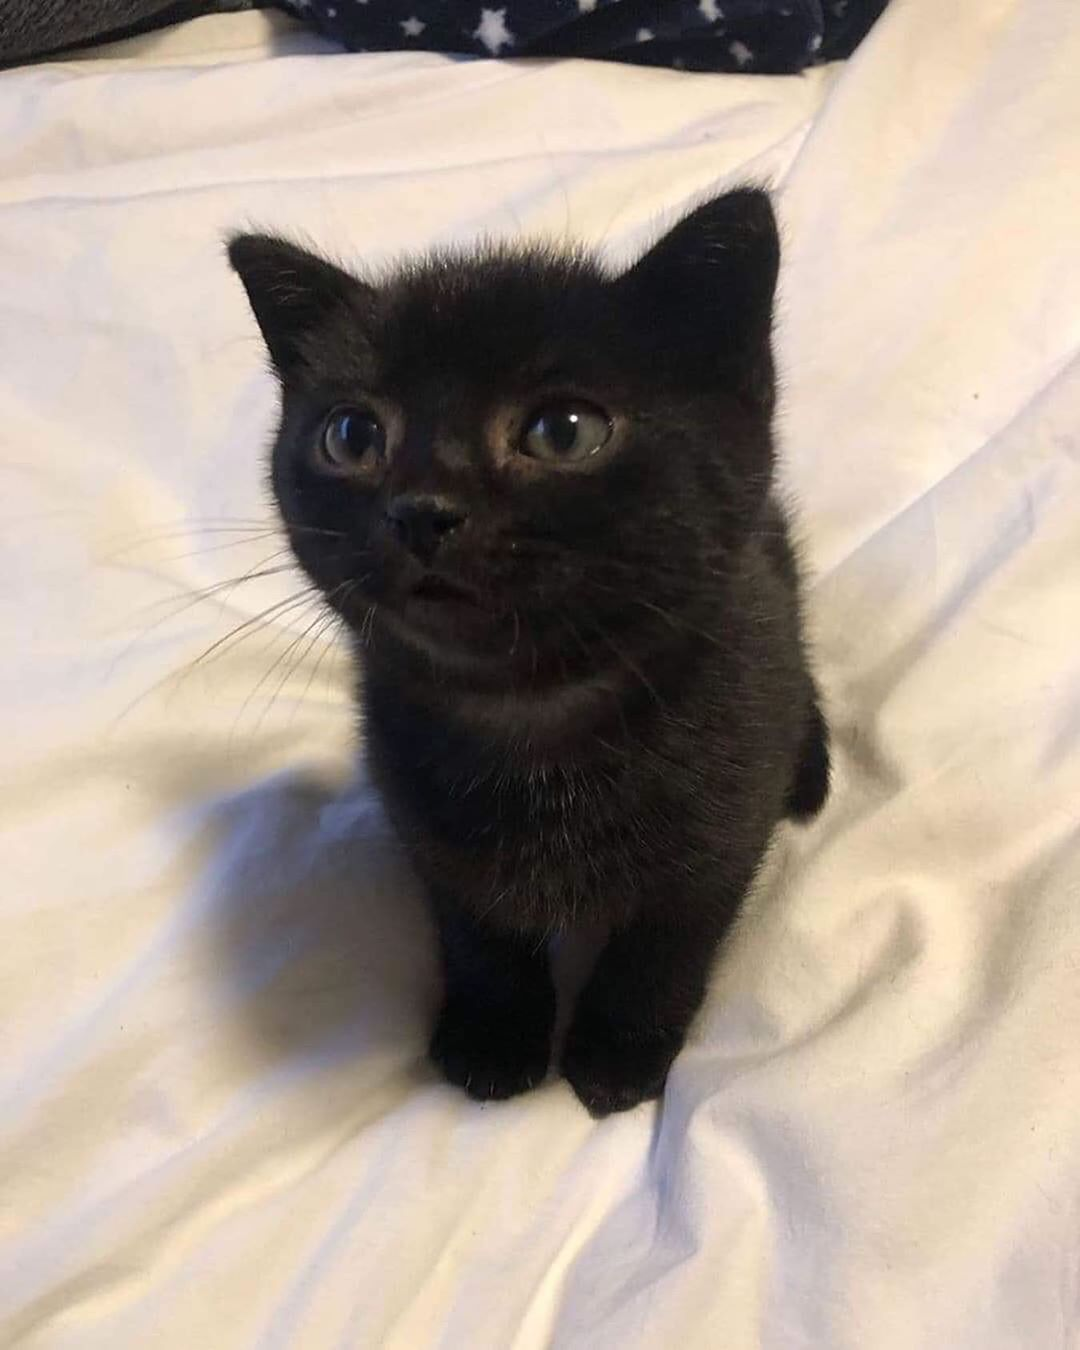 My Sister Found A Kitten Name Suggestions We Dont Know The Gender Yet Cats Cute Black Kitten Kittens And Puppies